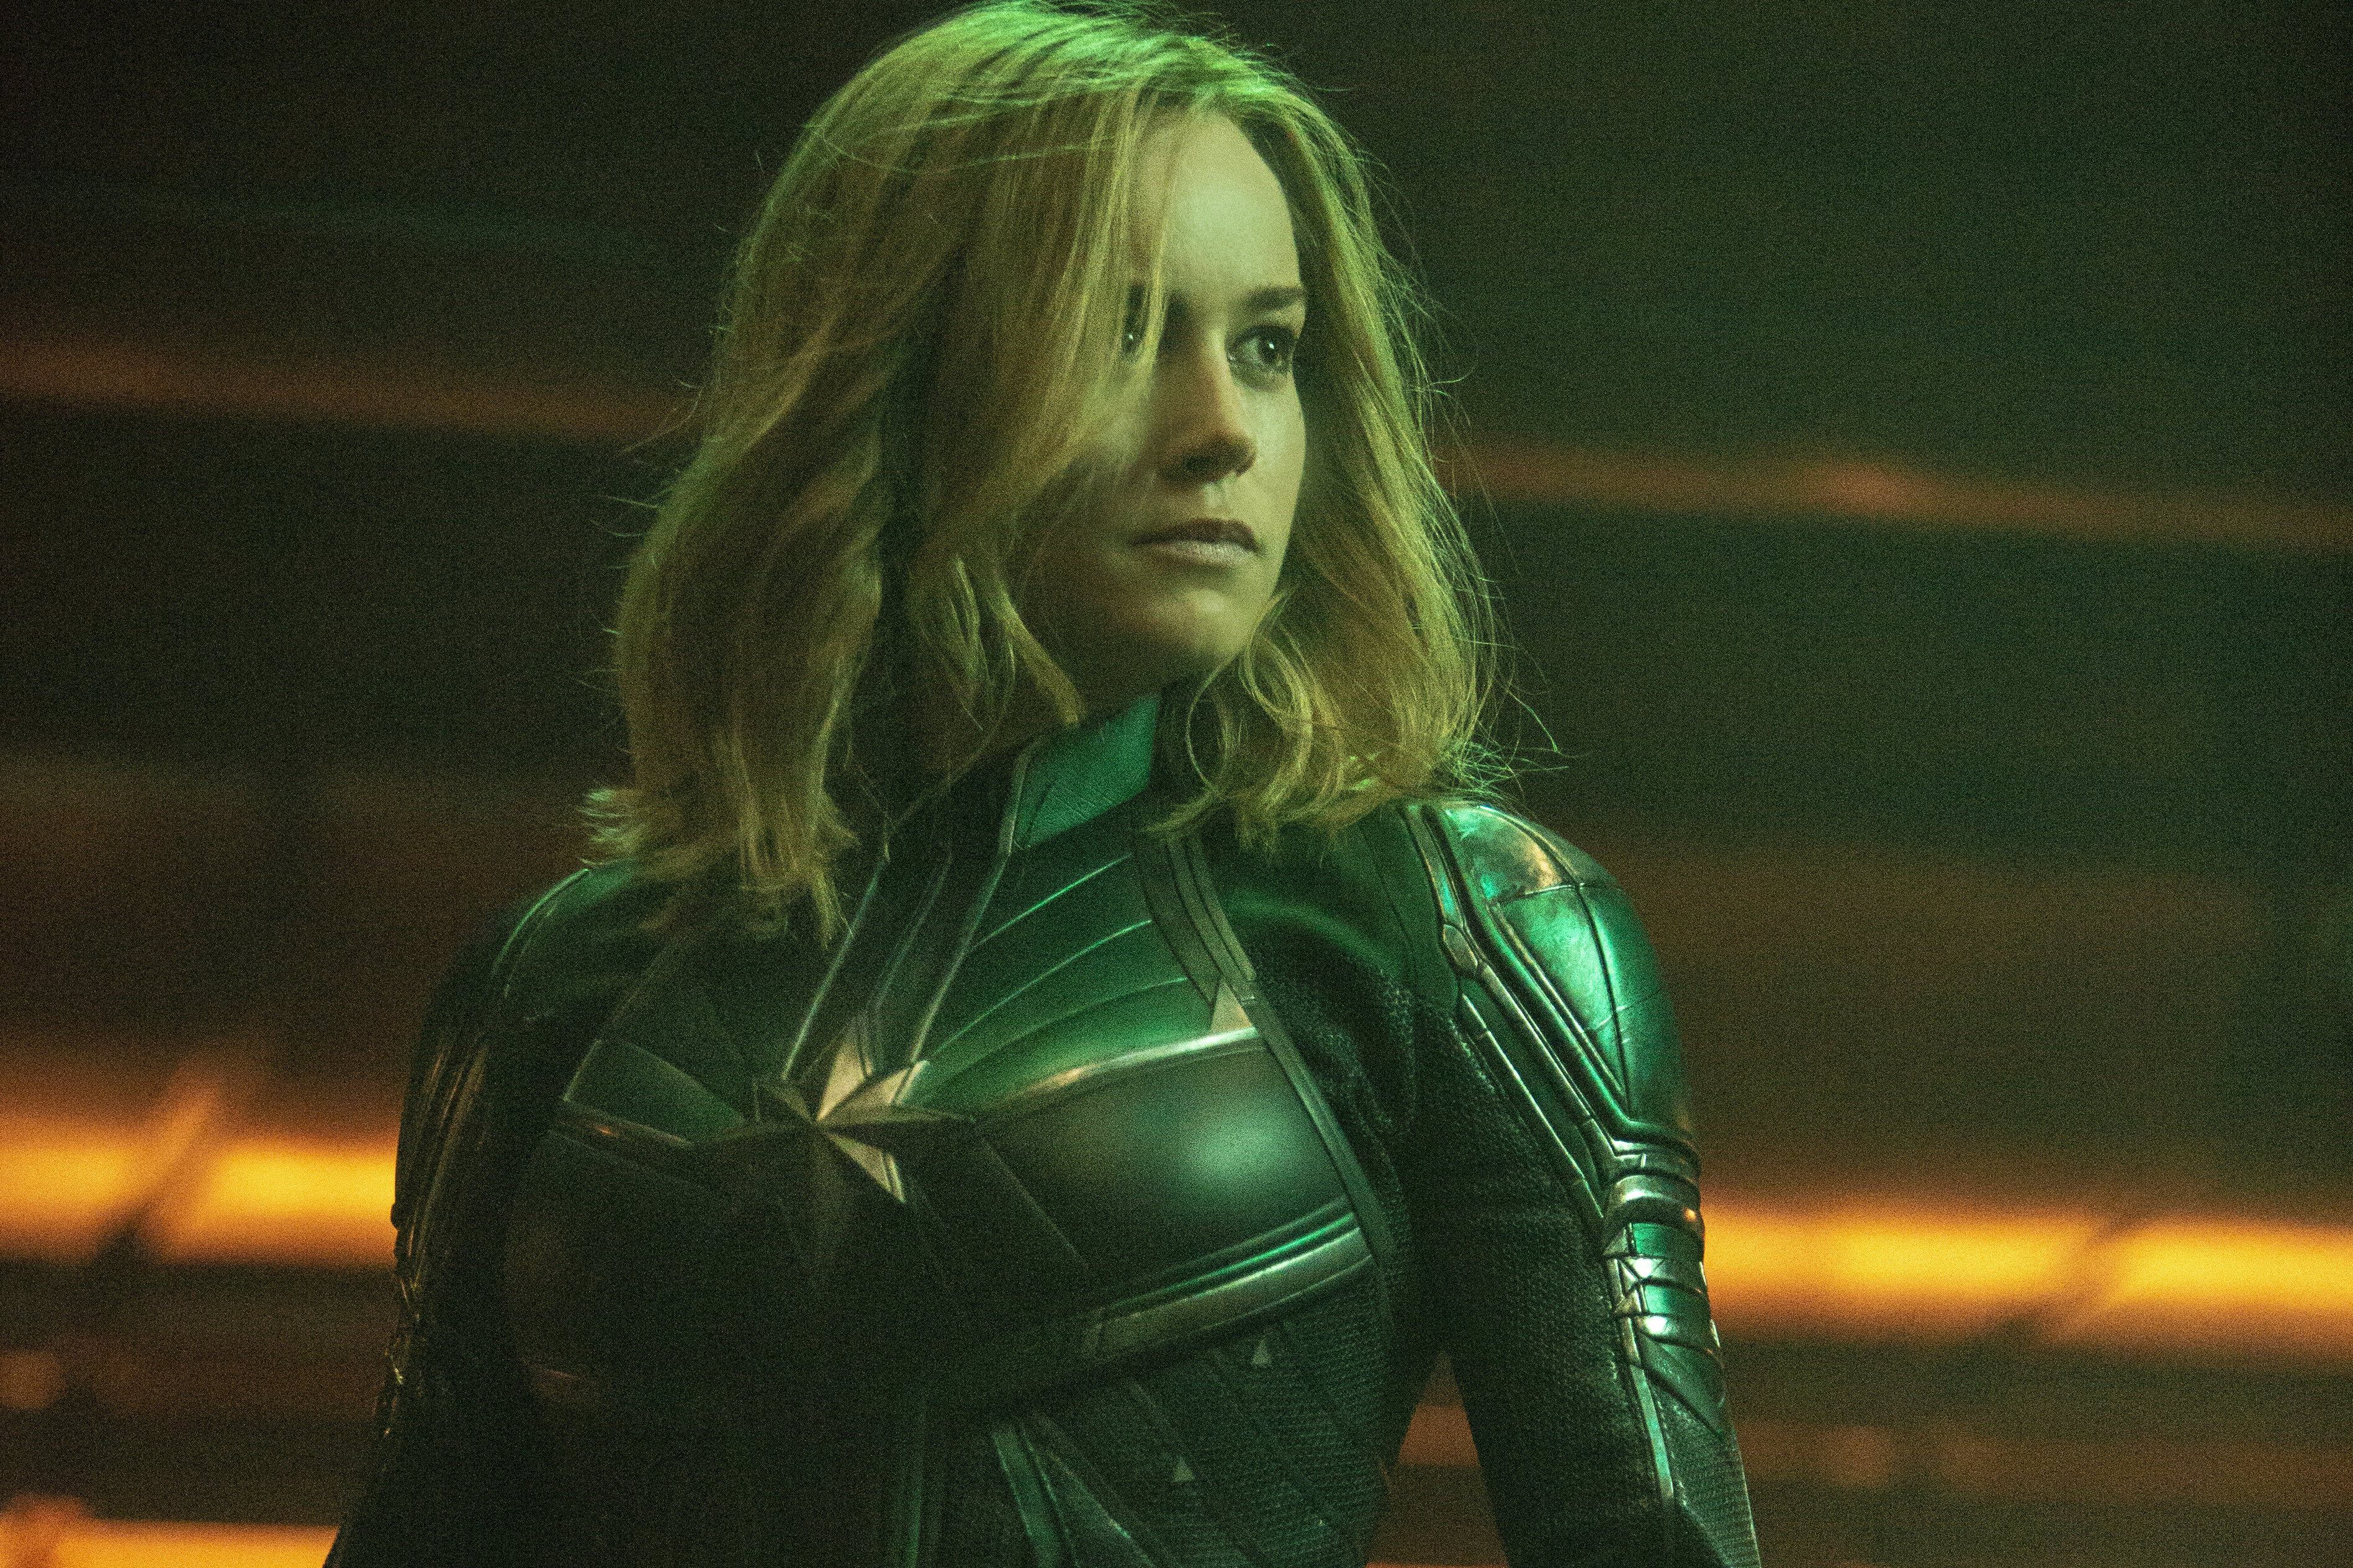 captain marvel': brie larson takes on bad guys, trolls — and wins